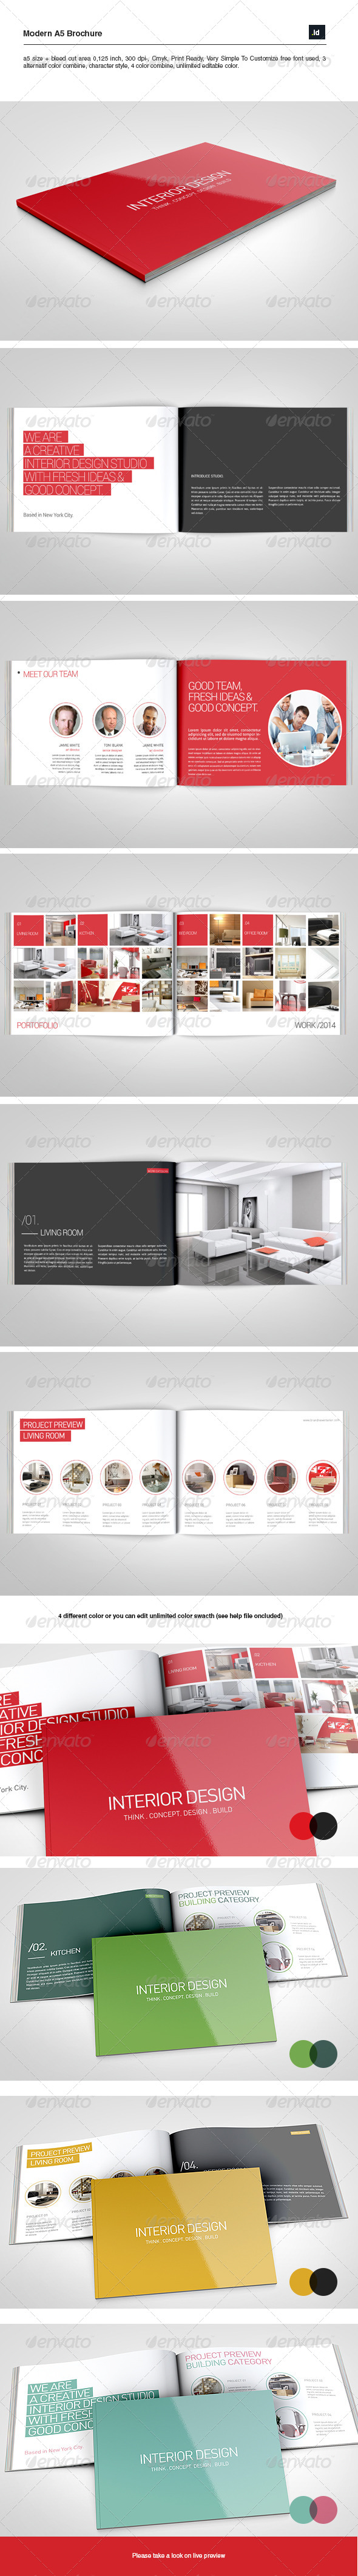 GraphicRiver A5 Modern Brochure 8101177